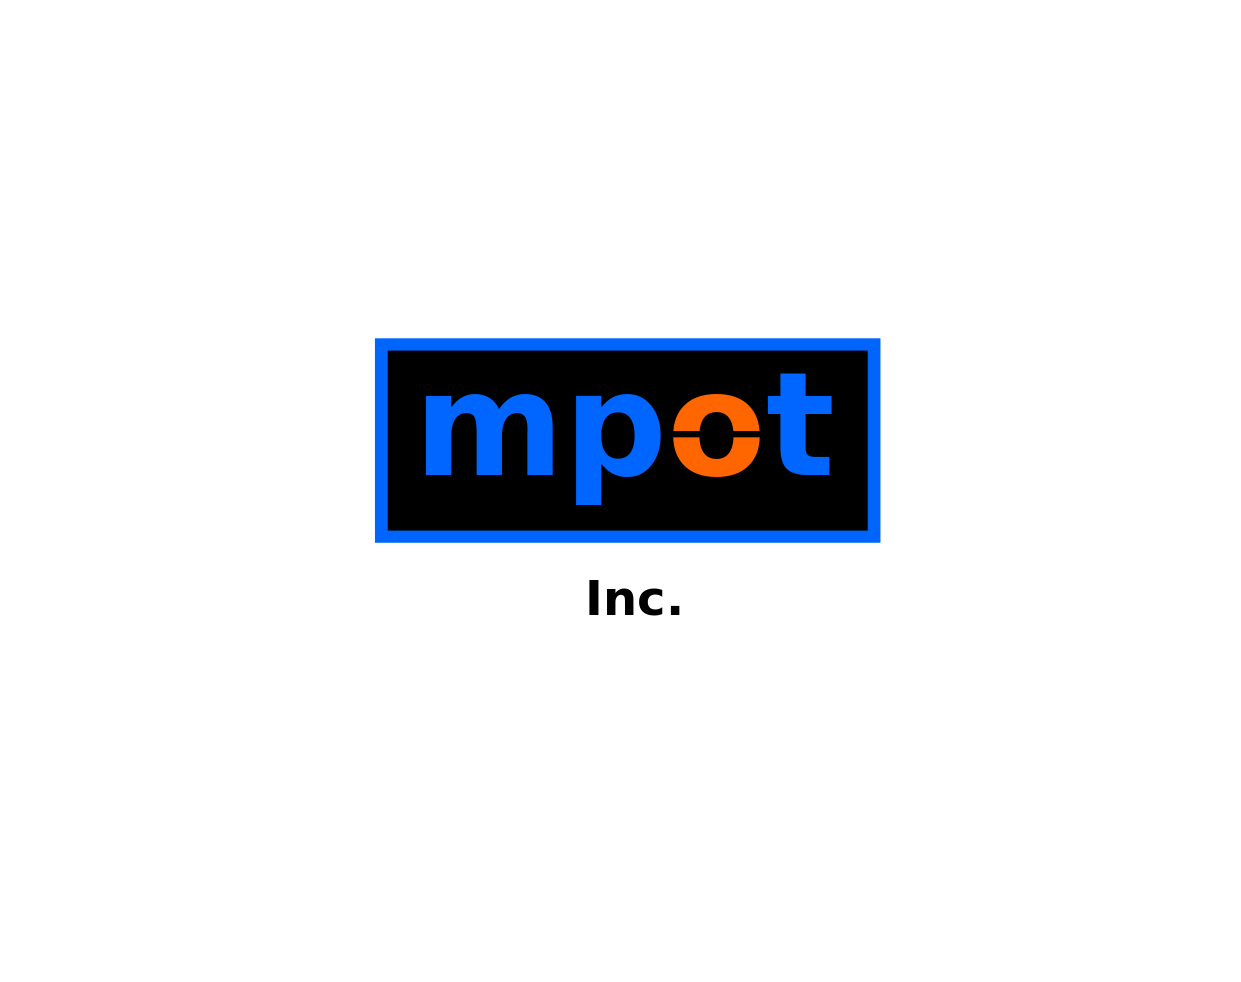 Logo Design by JaroslavProcka - Entry No. 195 in the Logo Design Contest Mpot inc  Logo Design.